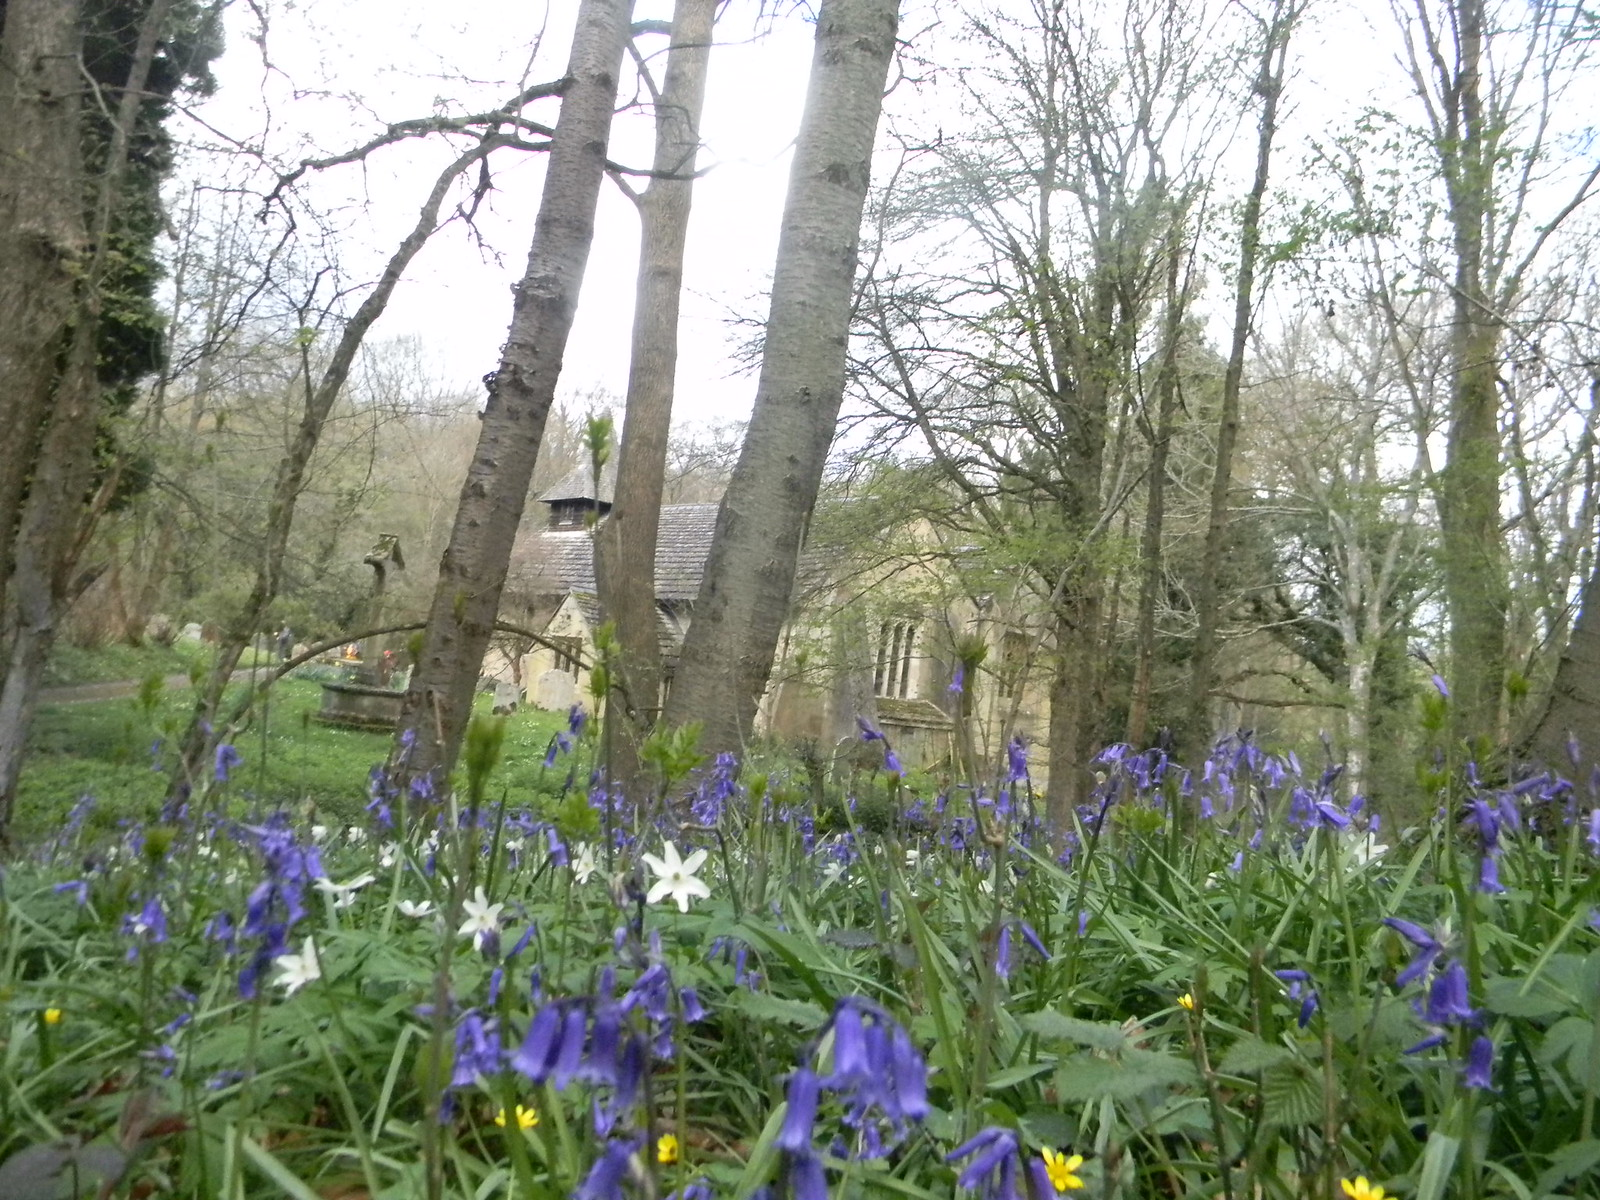 Bluebells near the church in the woods Ockley to Warnham